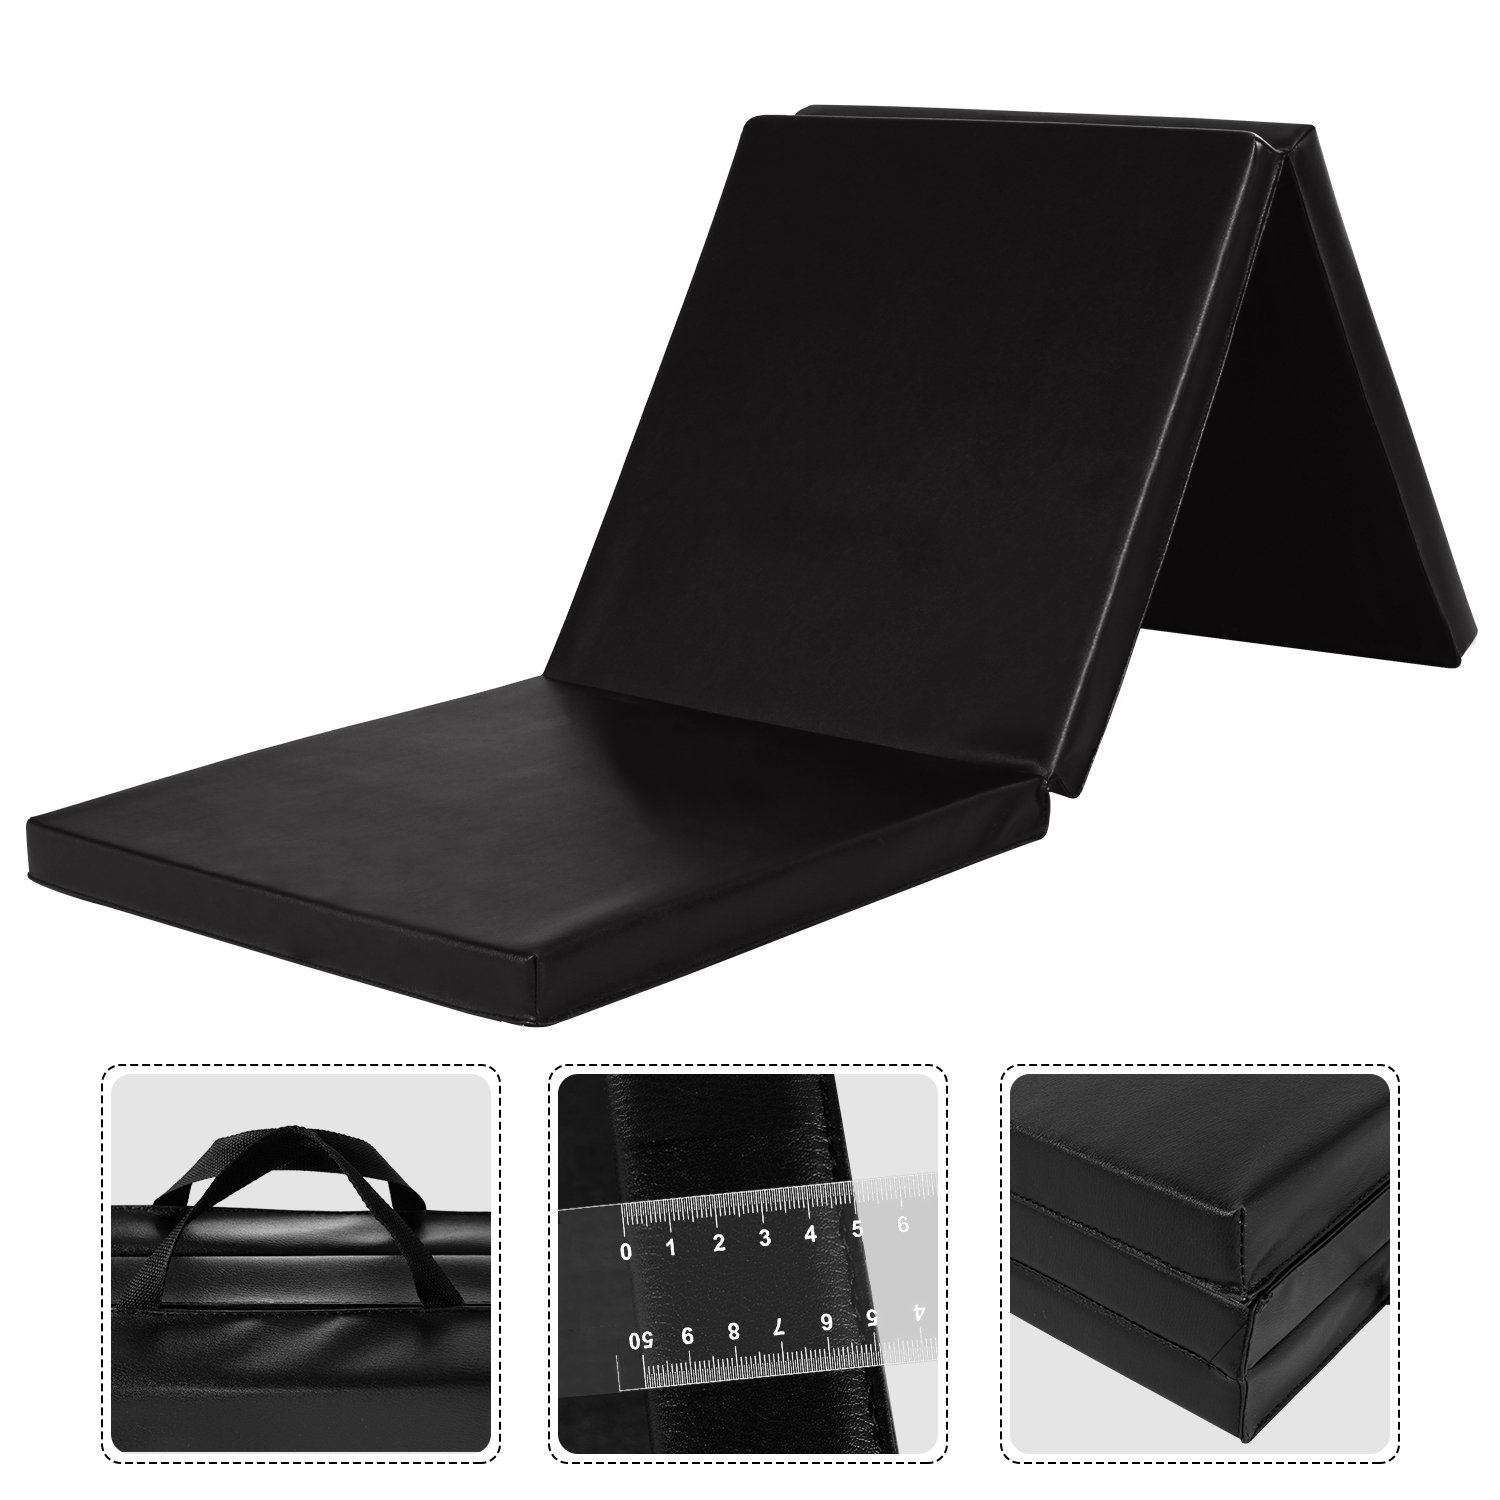 Leapair PU Leather Tri-Fold 2-Inch Thick Exercise  Pad, Black, 2 x 6 Feet